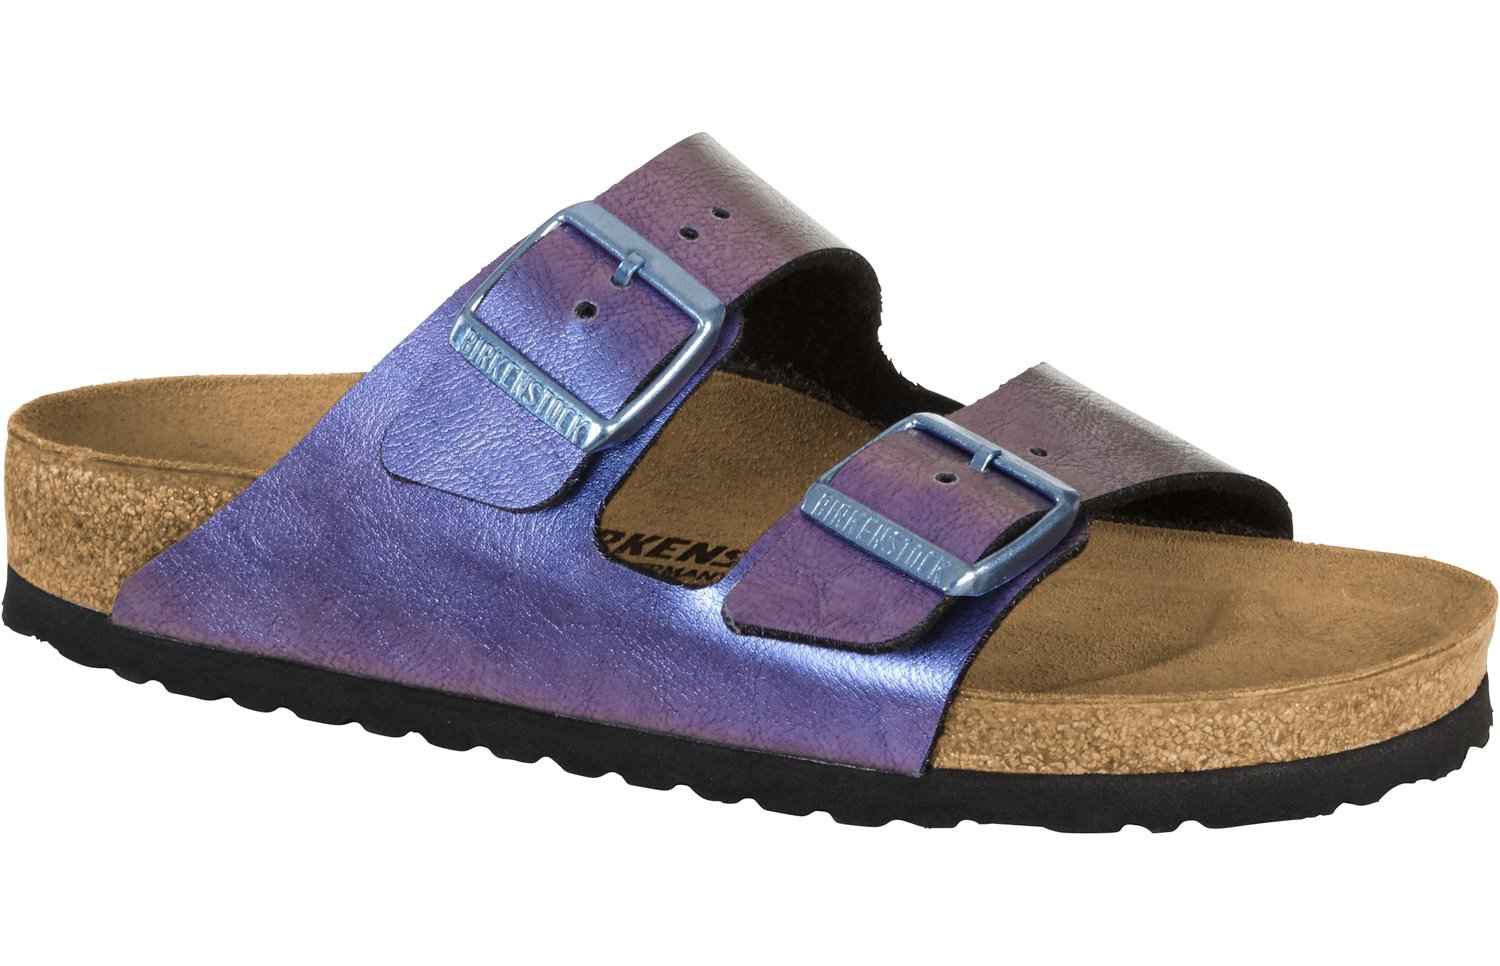 BIRKENSTOCK Damen Arizona Sandalen  41 EU|Graceful Gemm Violet (1012395)